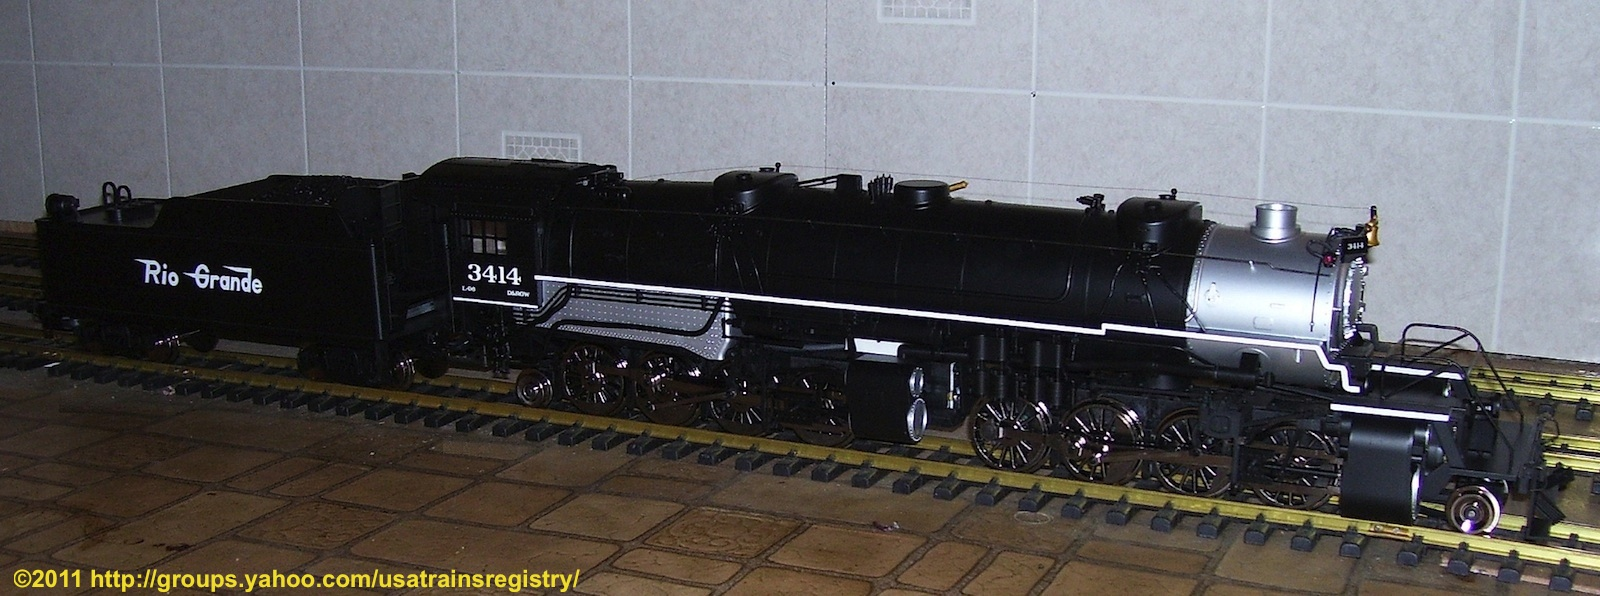 Rio Grande Mallet 2-8-8-2 Schlepptender Dampflokomotive (Steam locomotive) 3414